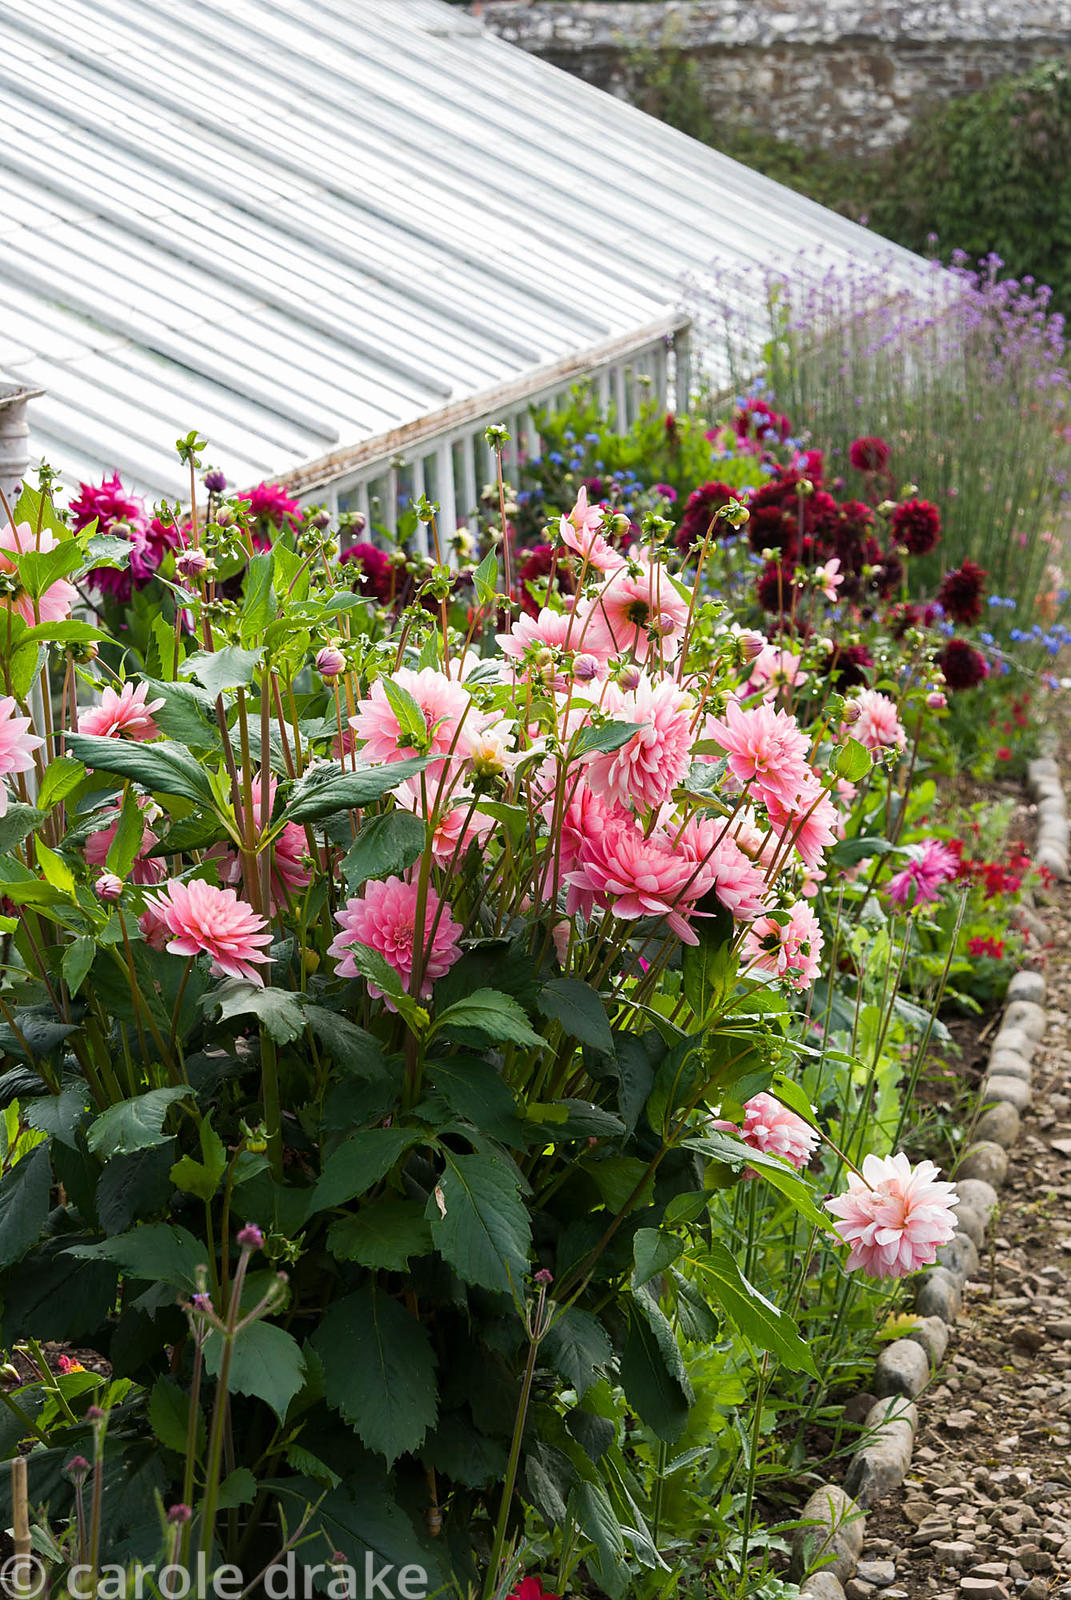 Restored Victorian glasshouses with a border of dahlias alongside. Clovelly Court, Bideford, Devon, UK